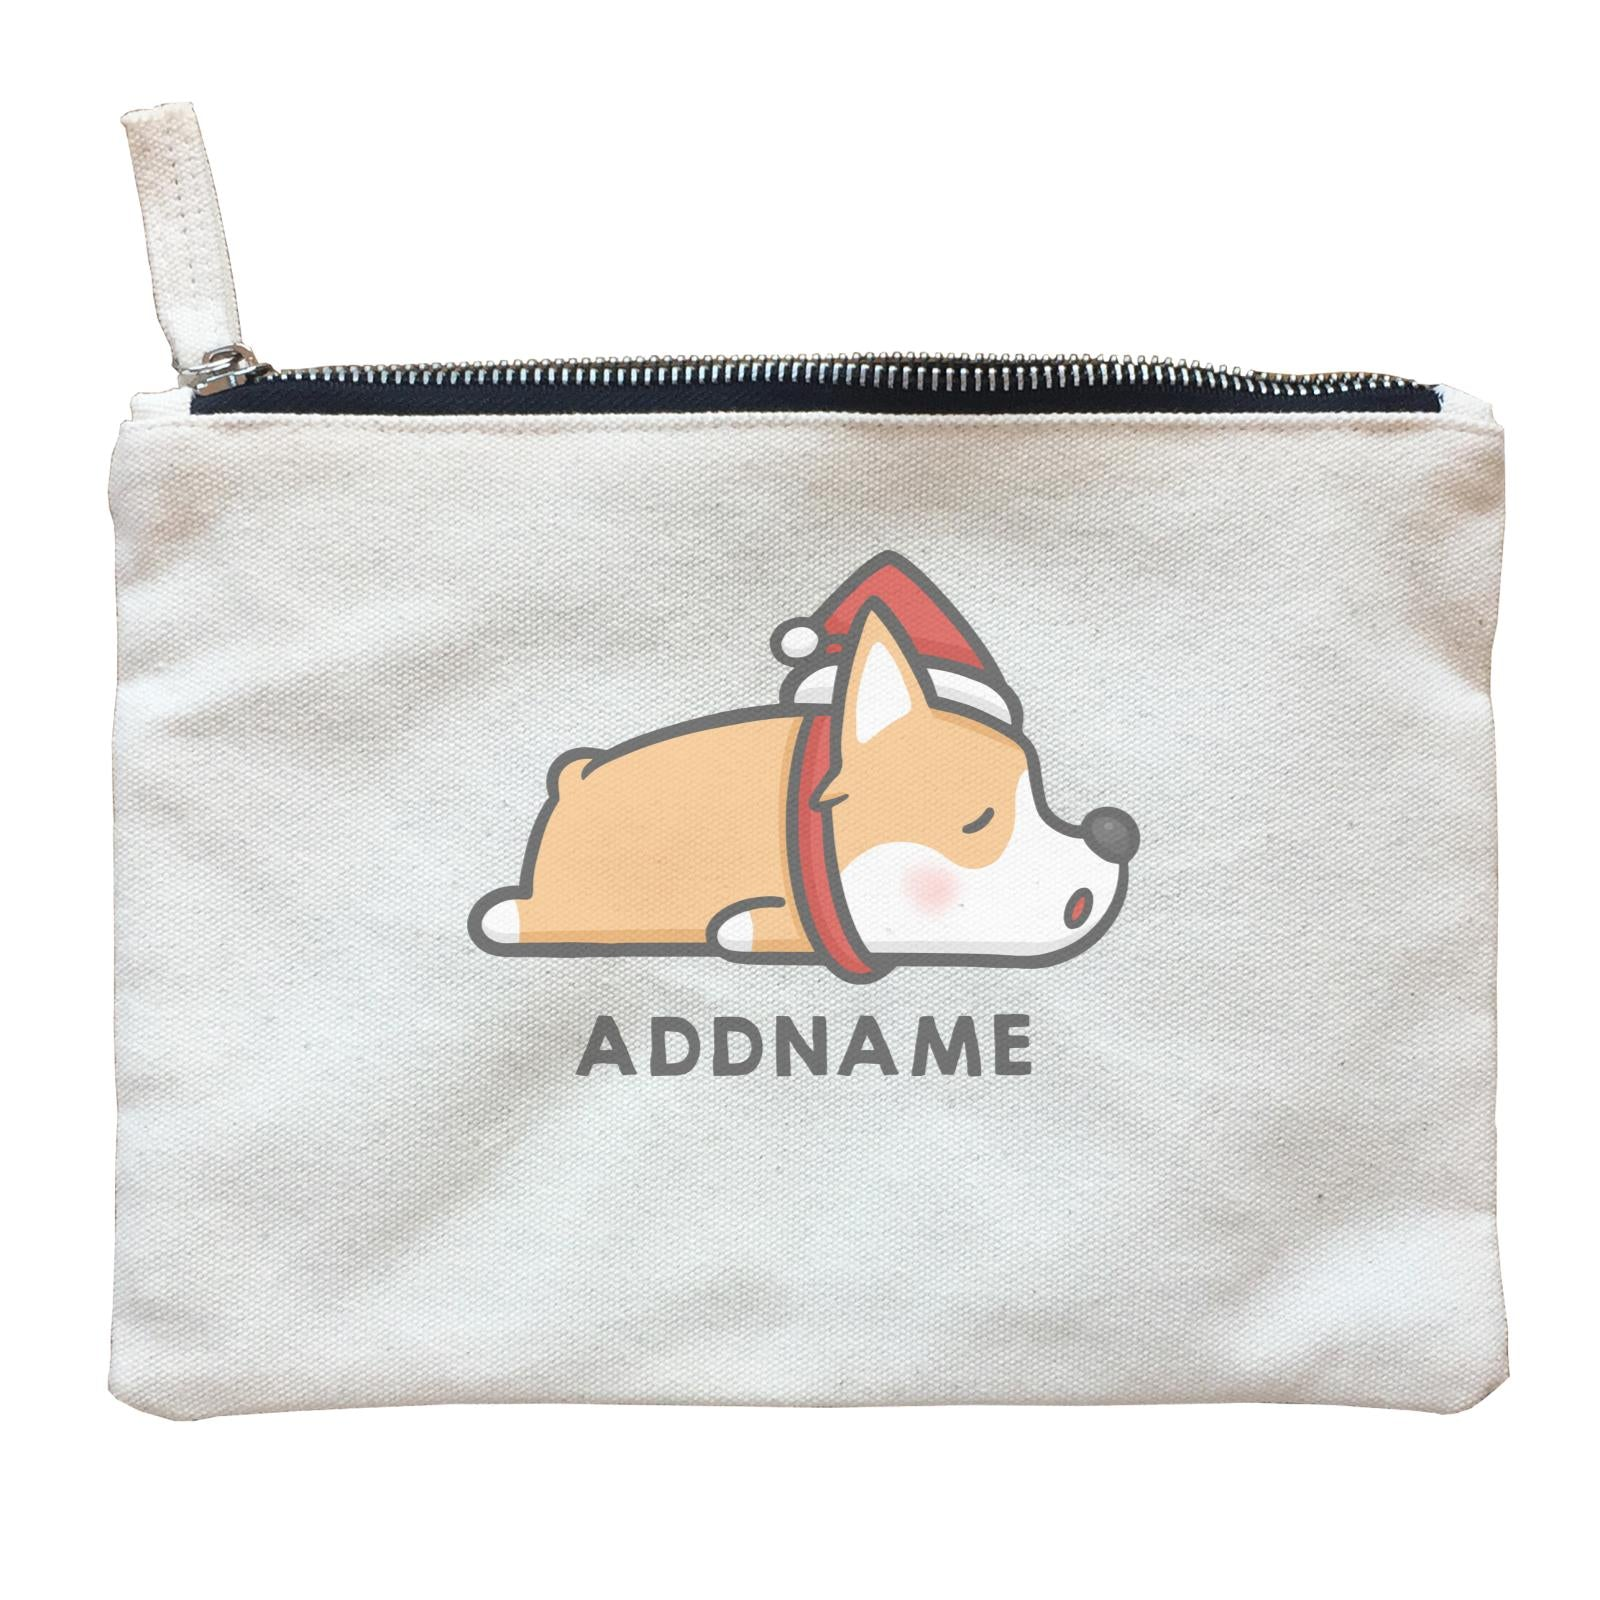 Xmas Cute Sleeping Corgi Addname Accessories Zipper Pouch